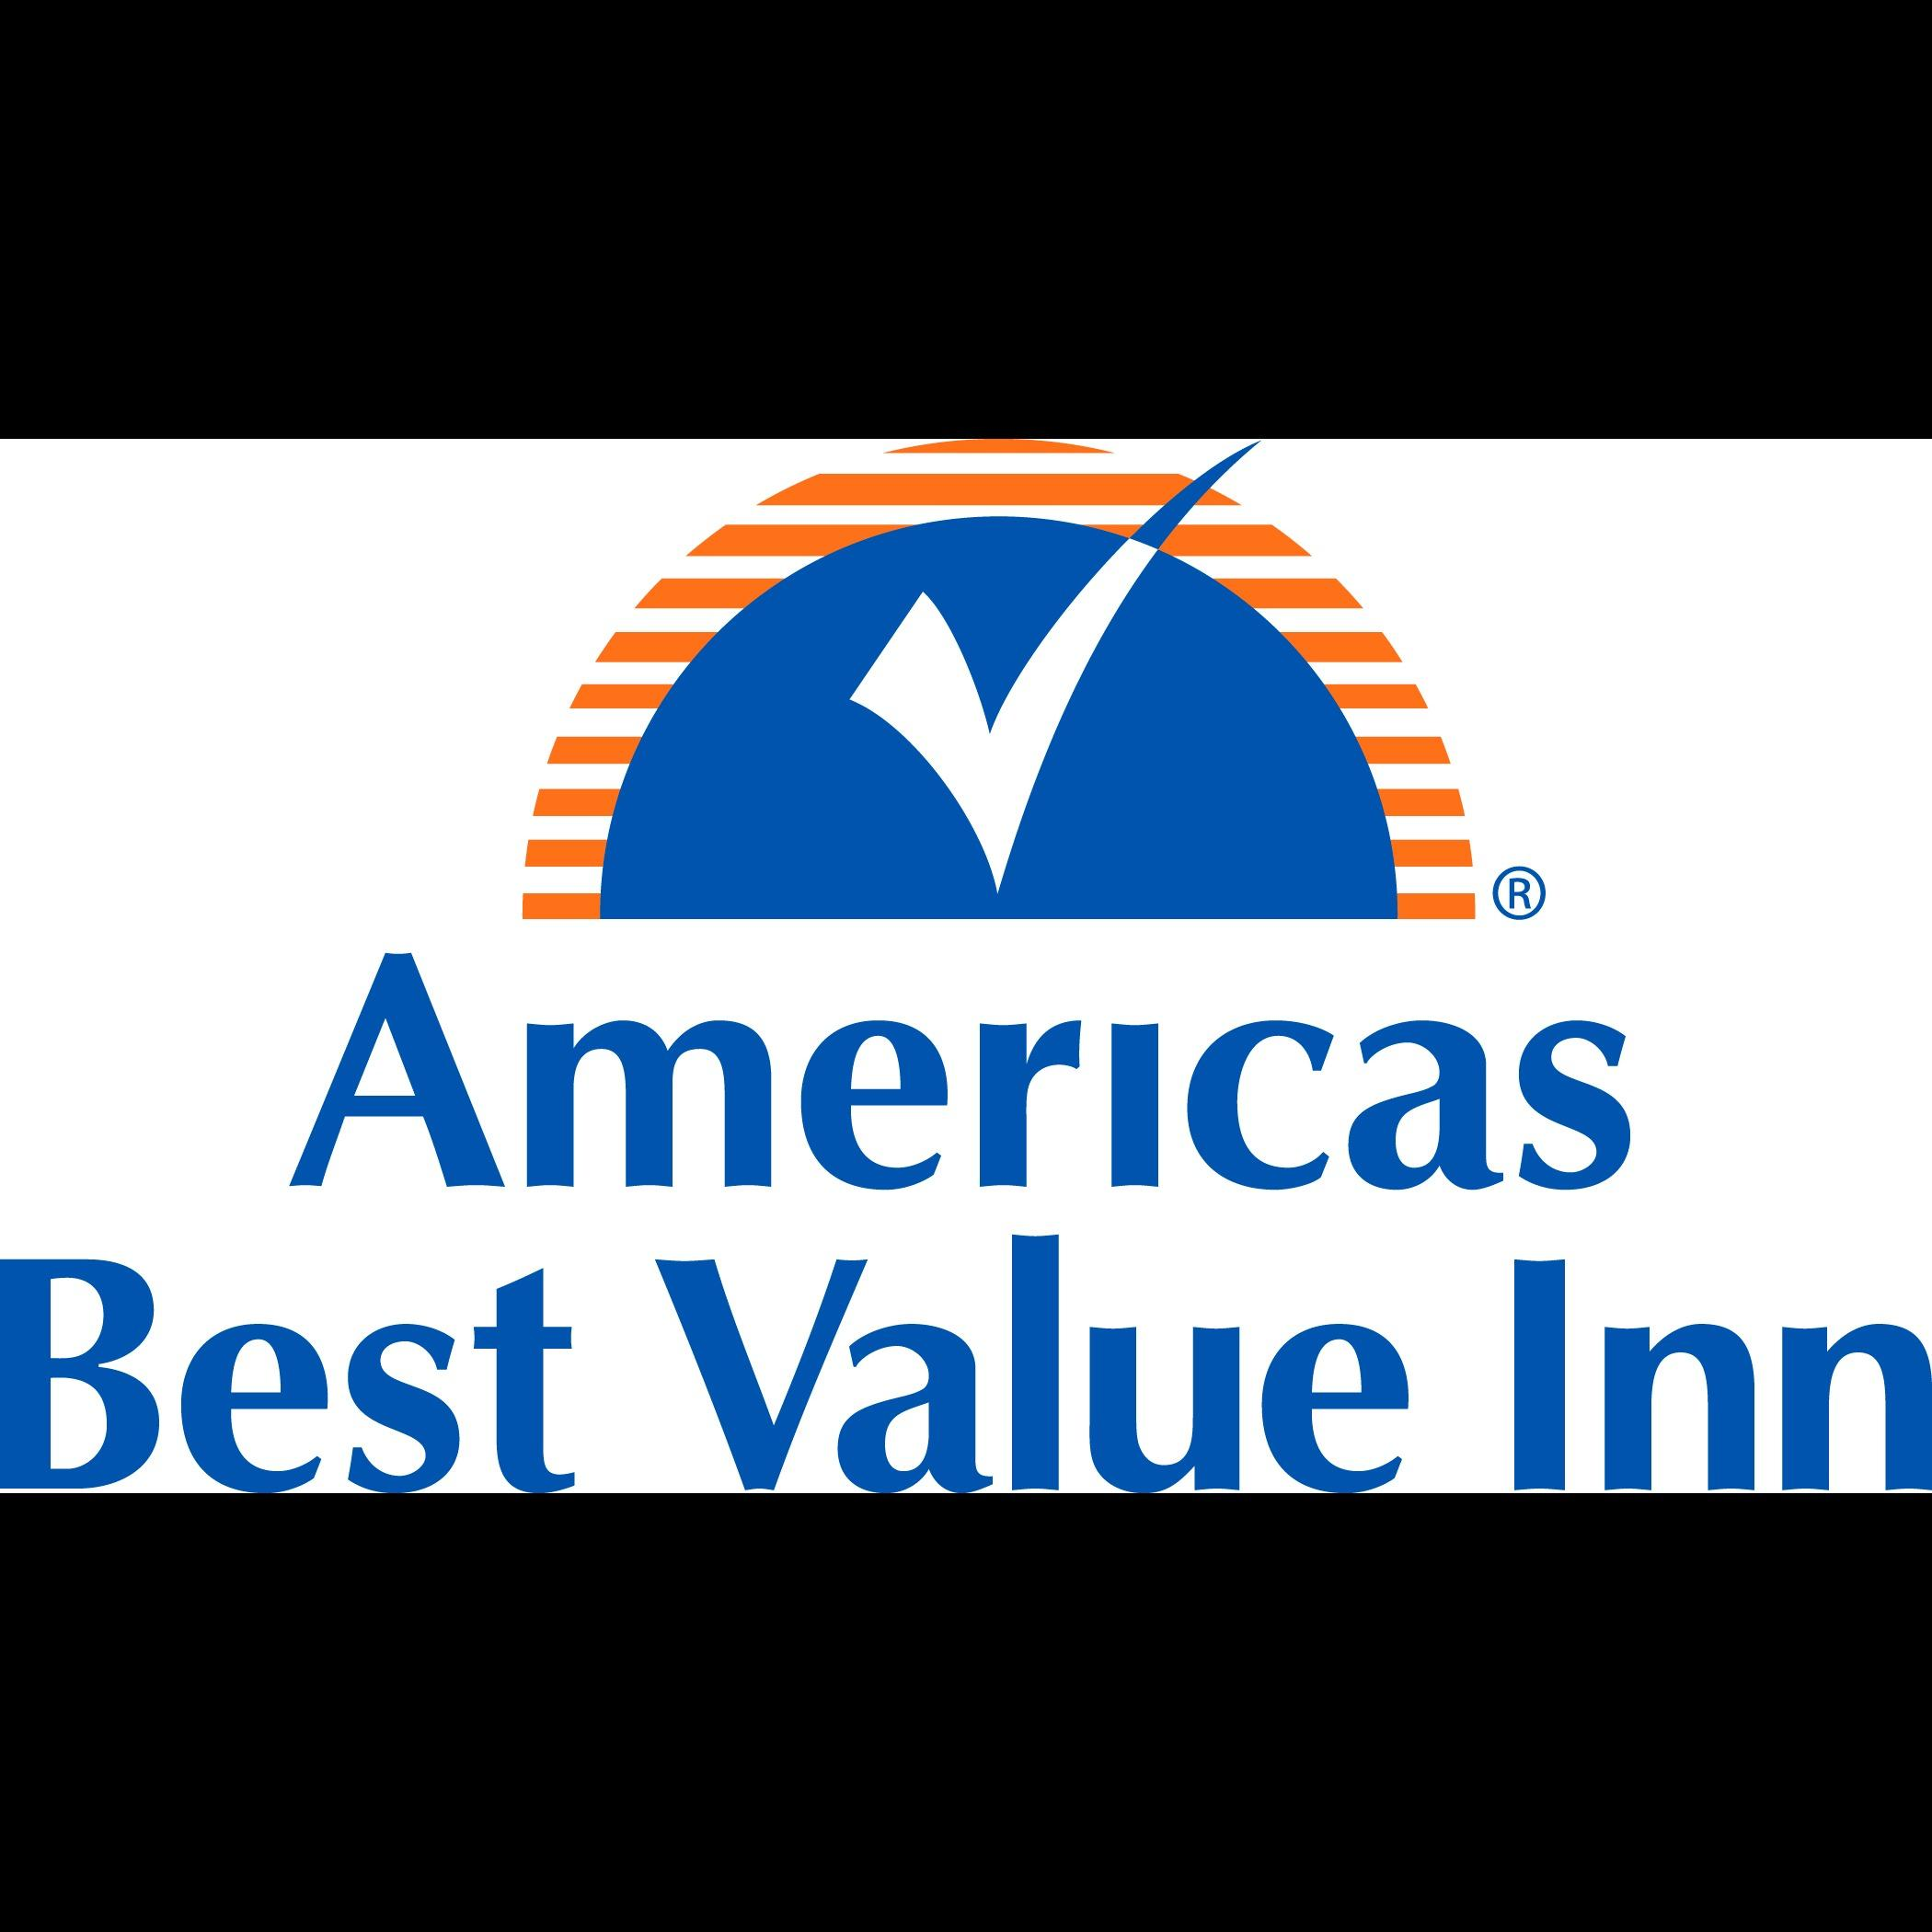 Americas Best Value Inn - Carson City